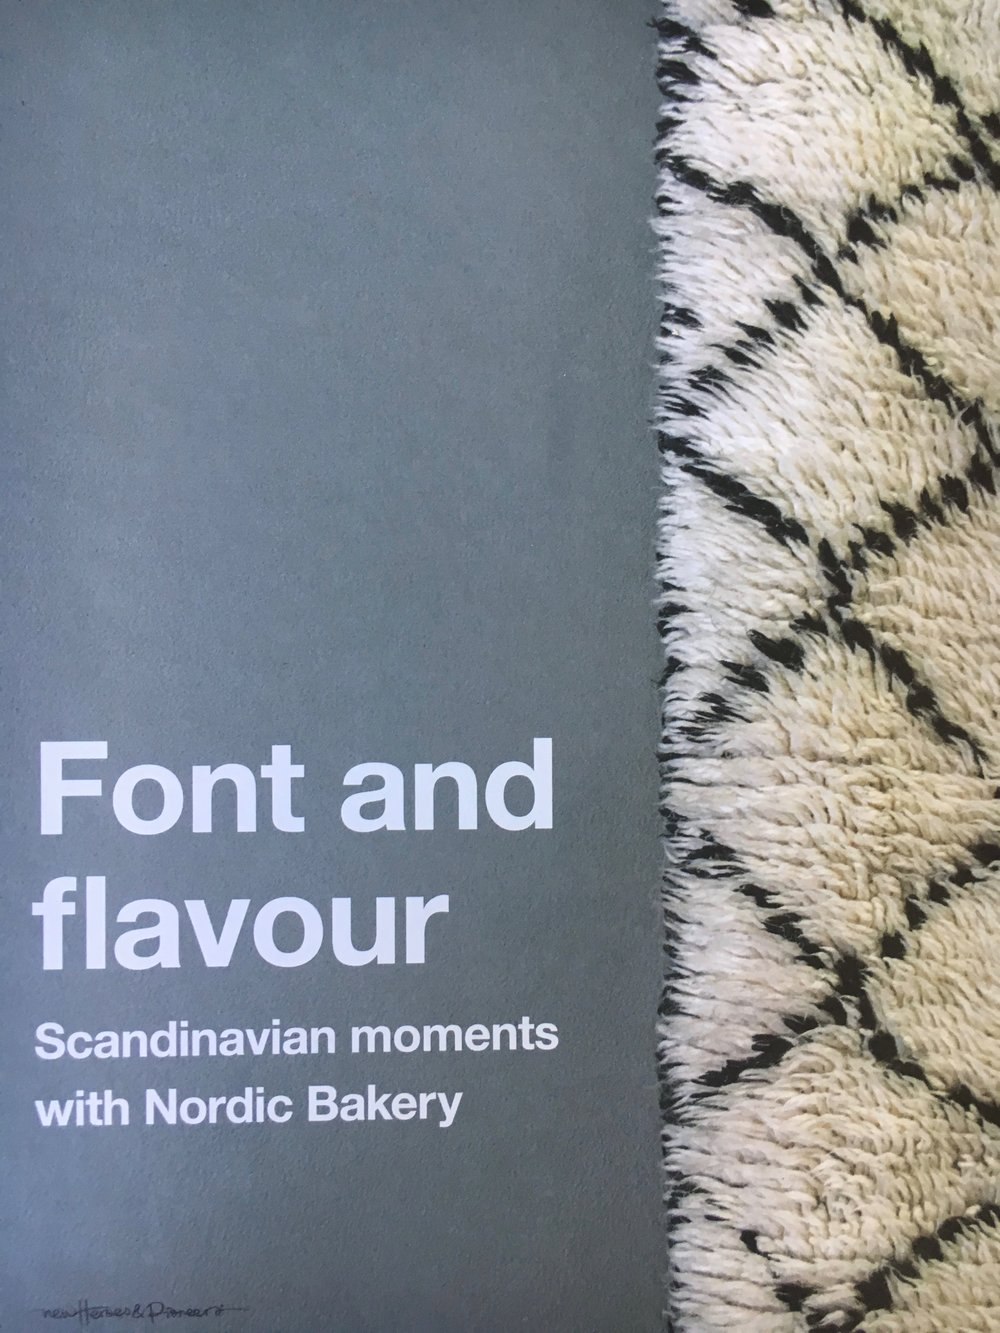 - I co-wrote and copy edited this 150 page lifestyle book for London based Nordic Bakery. Publisher: NHP